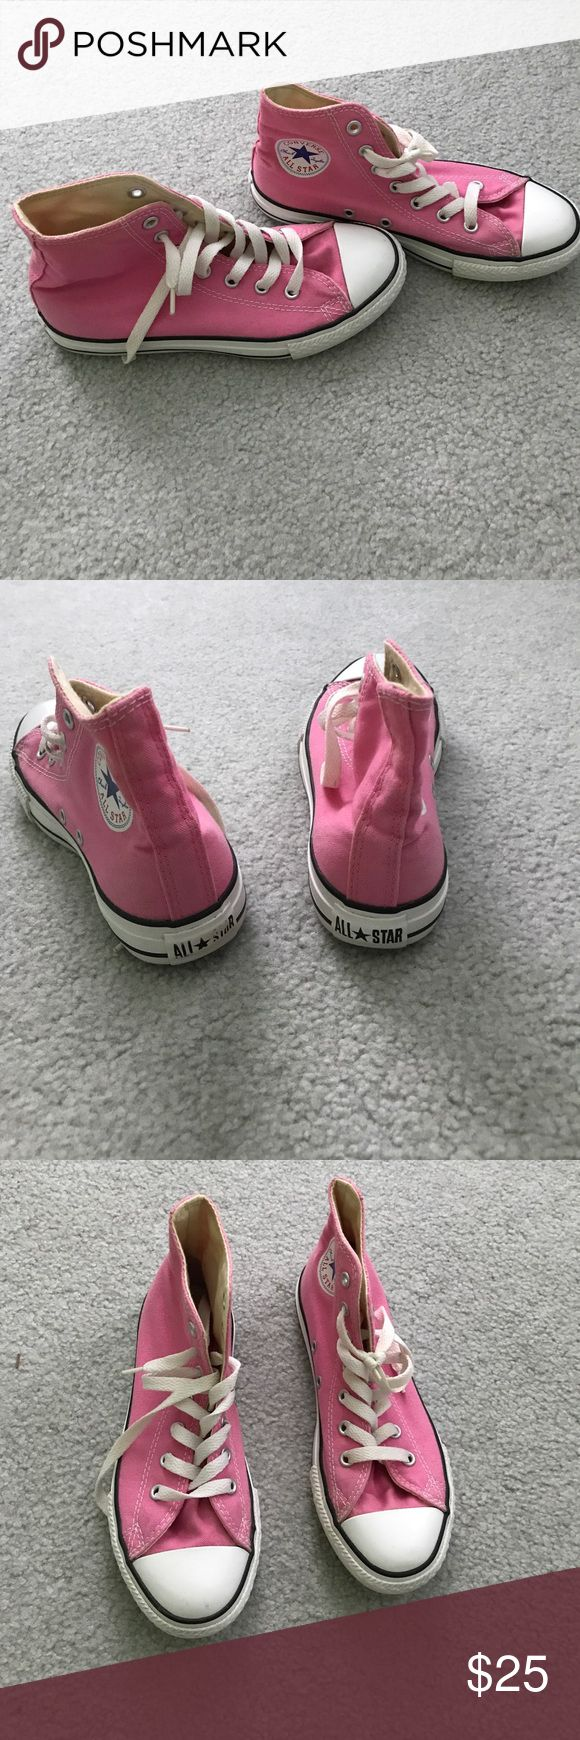 Pink high top Converse Pink high top converse size 3 kids - fits size 5/6 women's. little wear and tear on back but like brand new. Gently used Converse Shoes Sneakers